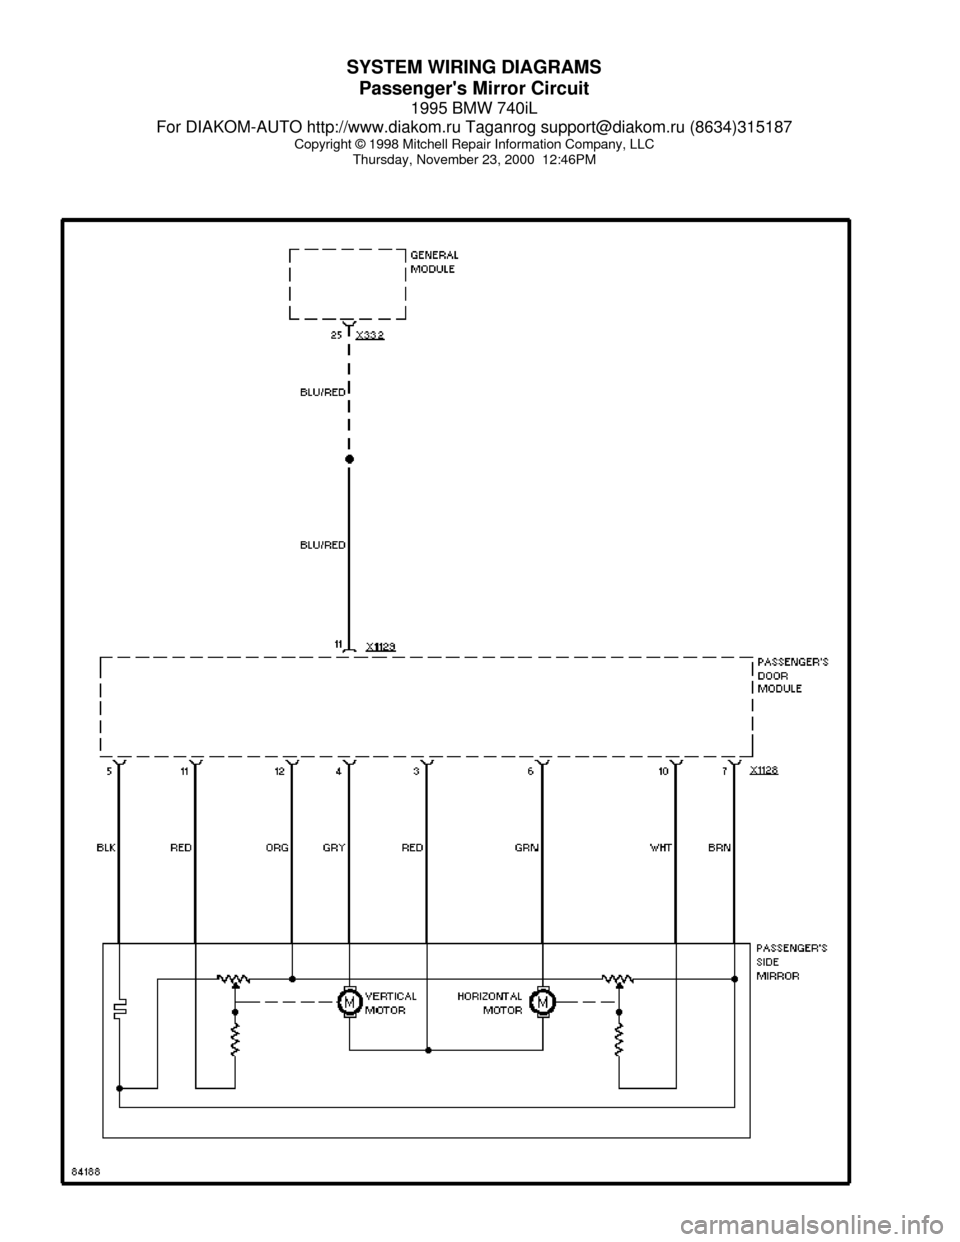 Wiring Diagram Toyota Hilux Surf : Toyota runner hilux surf wiring diagram electrical system